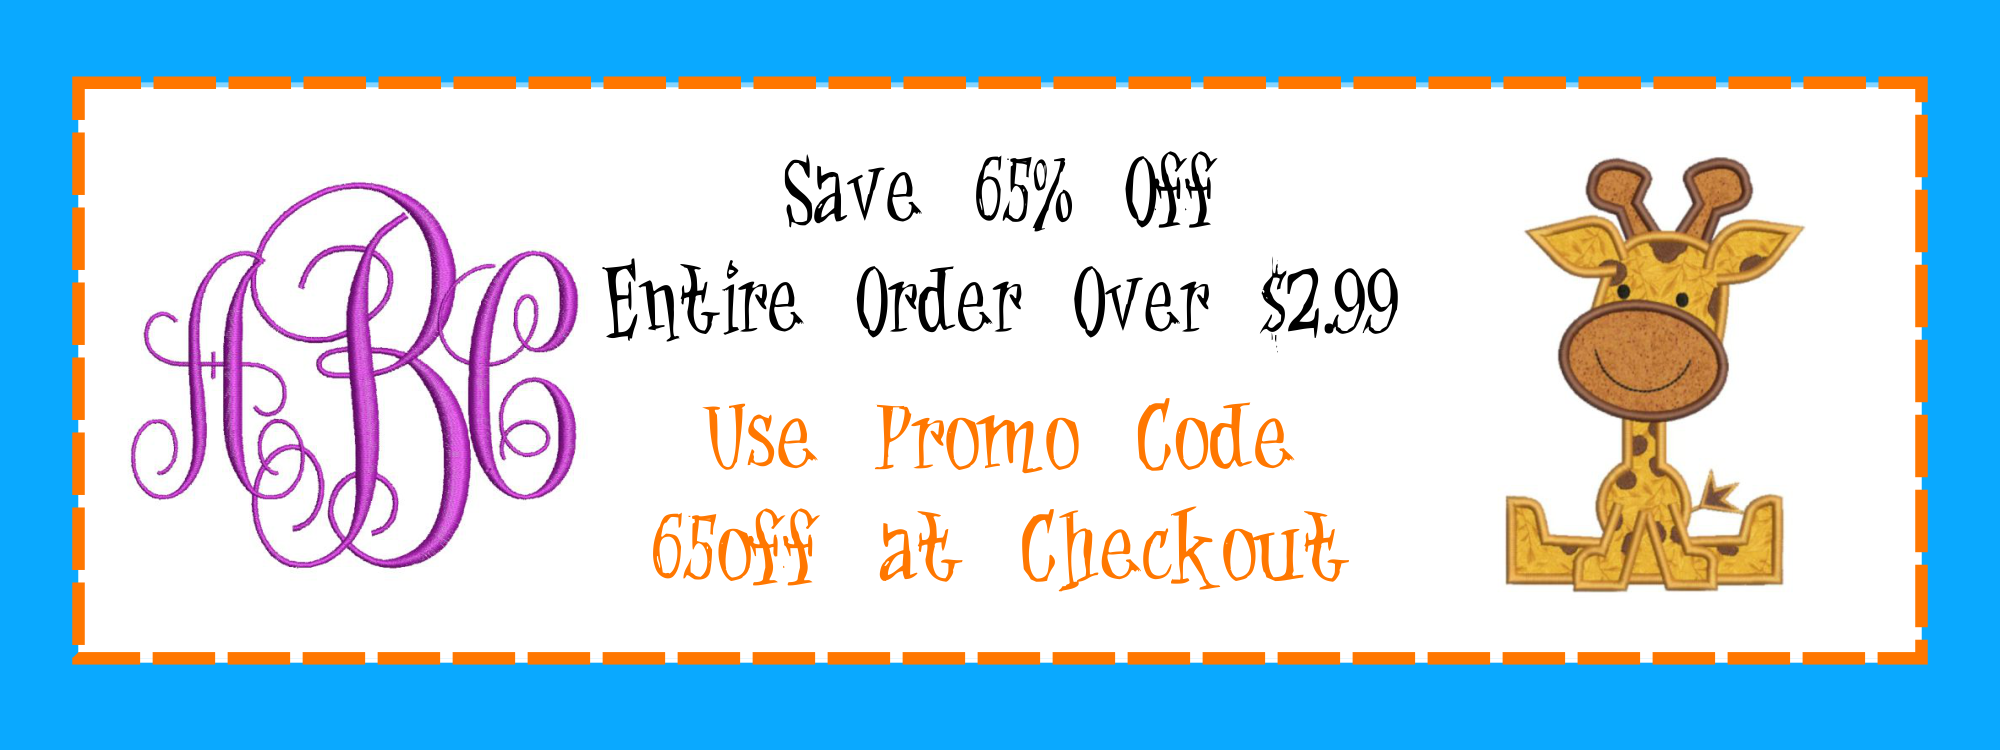 Embroidery Design Sale - Coupon Promo Code